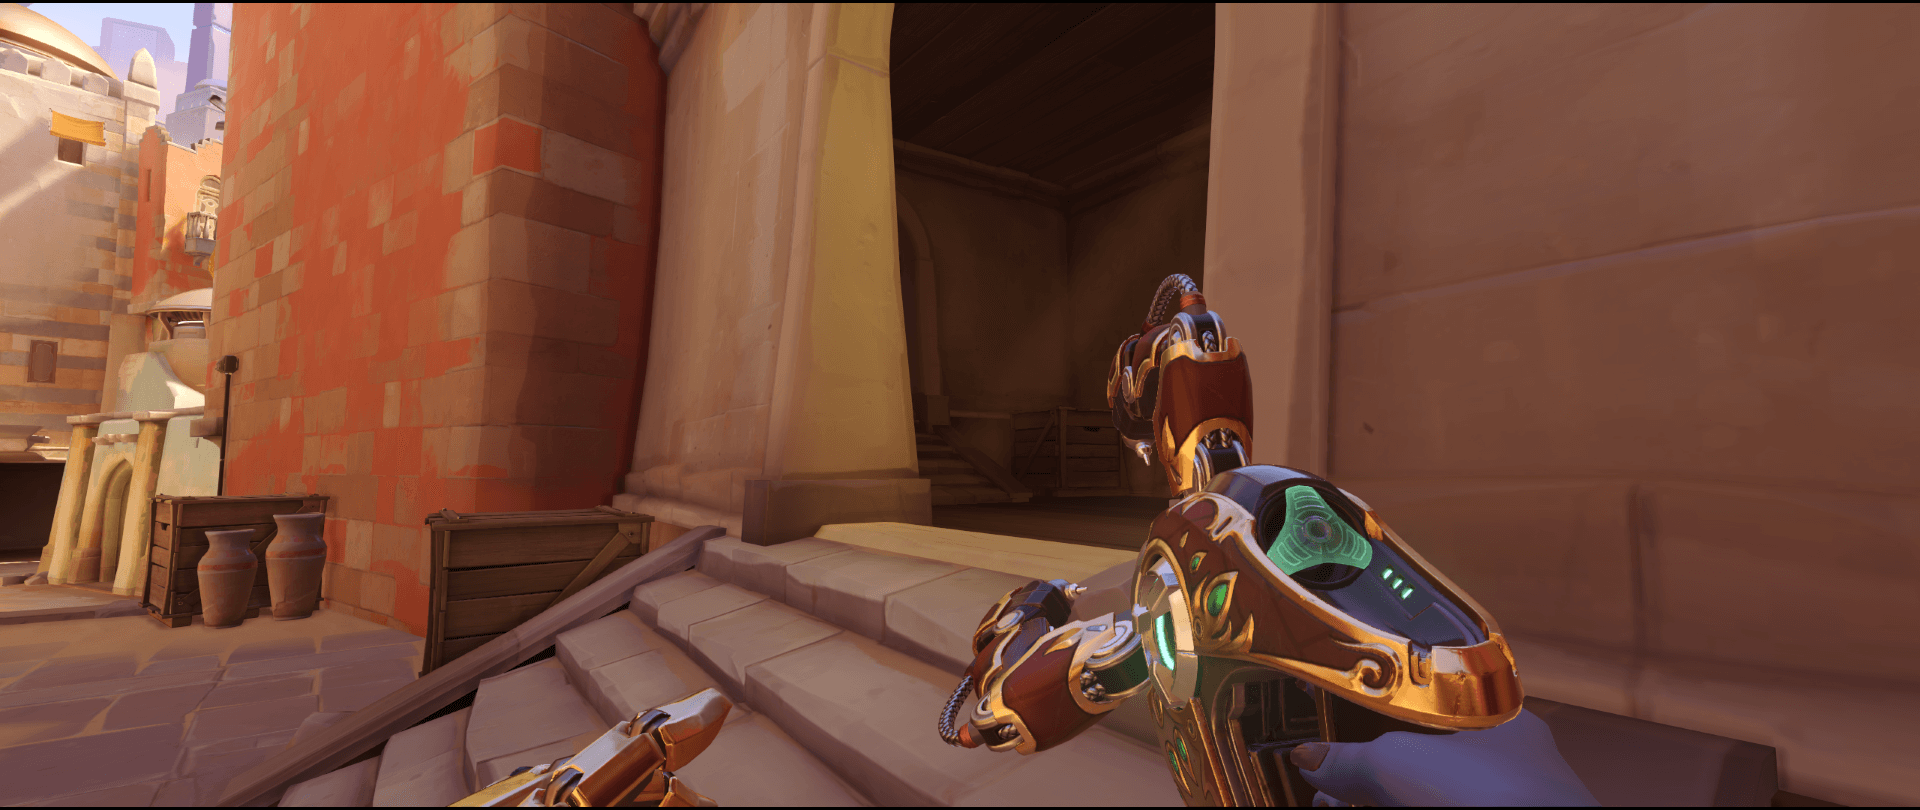 Symmetra shield generator spot Temple of Anubis main spot point one 2.png